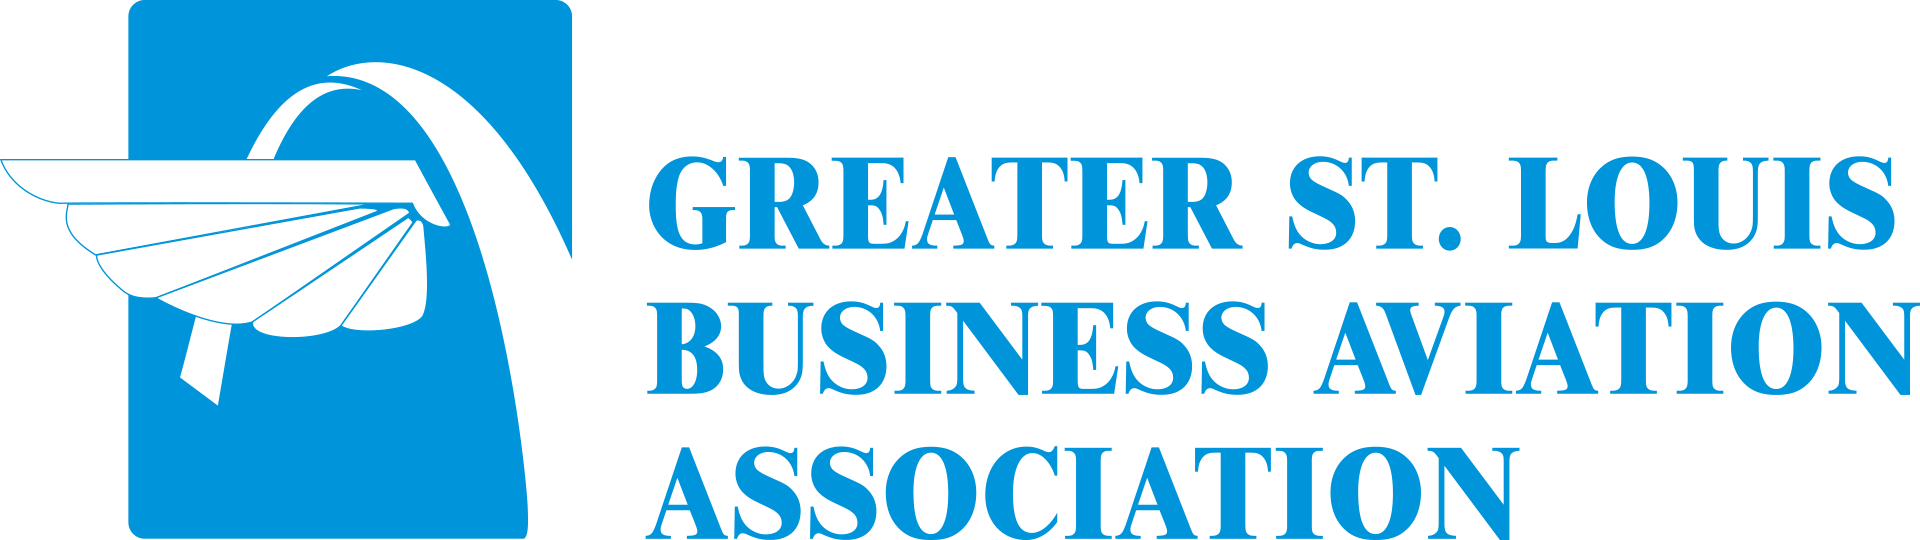 GREATER ST. LOUIS BUSINESS AVIATION ASSOCIATION - GSLBAA